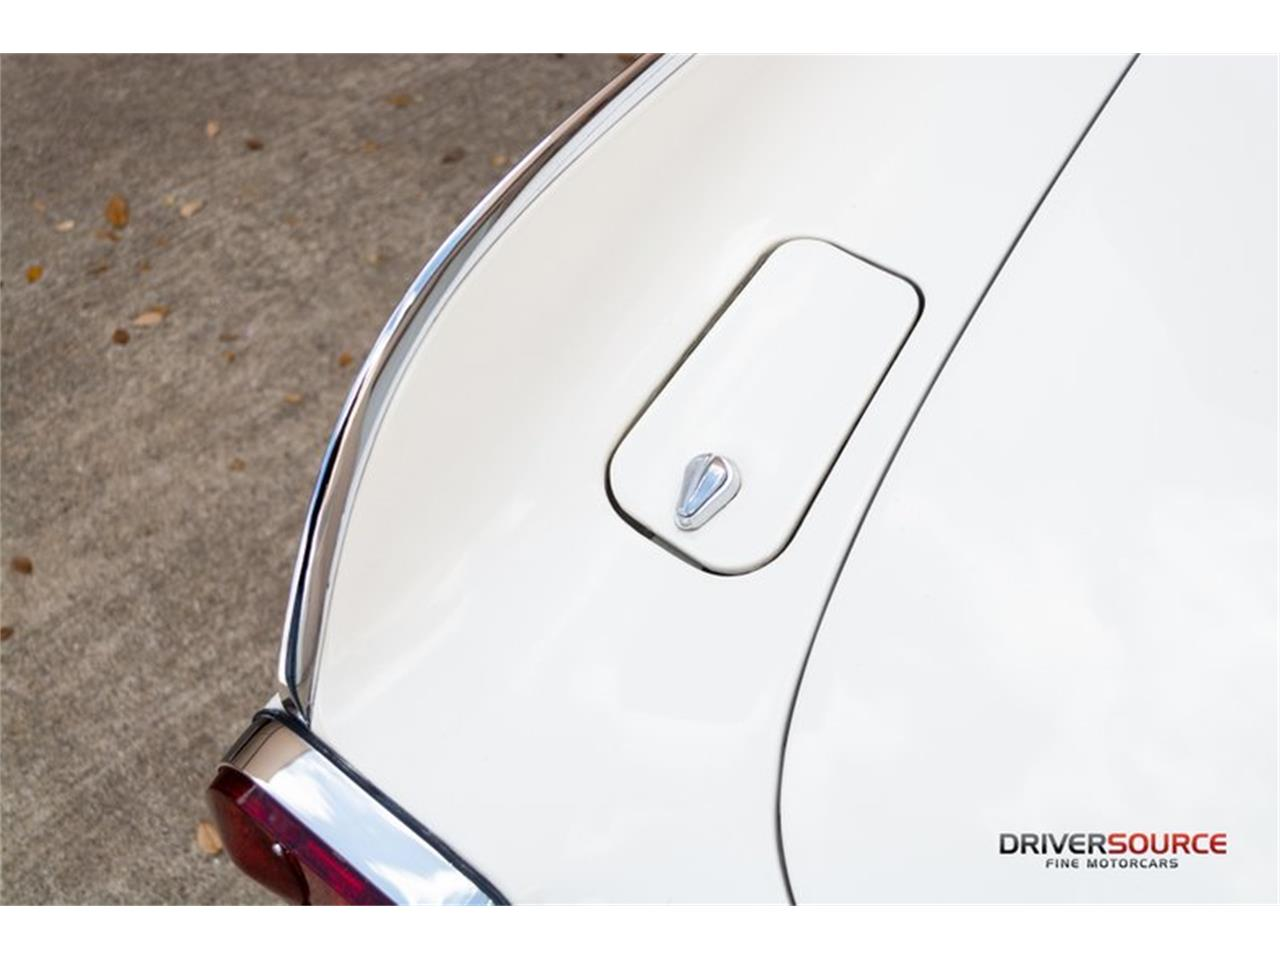 Large Picture of Classic 1964 Volvo P1800E - $49,250.00 Offered by Driversource - NNM3